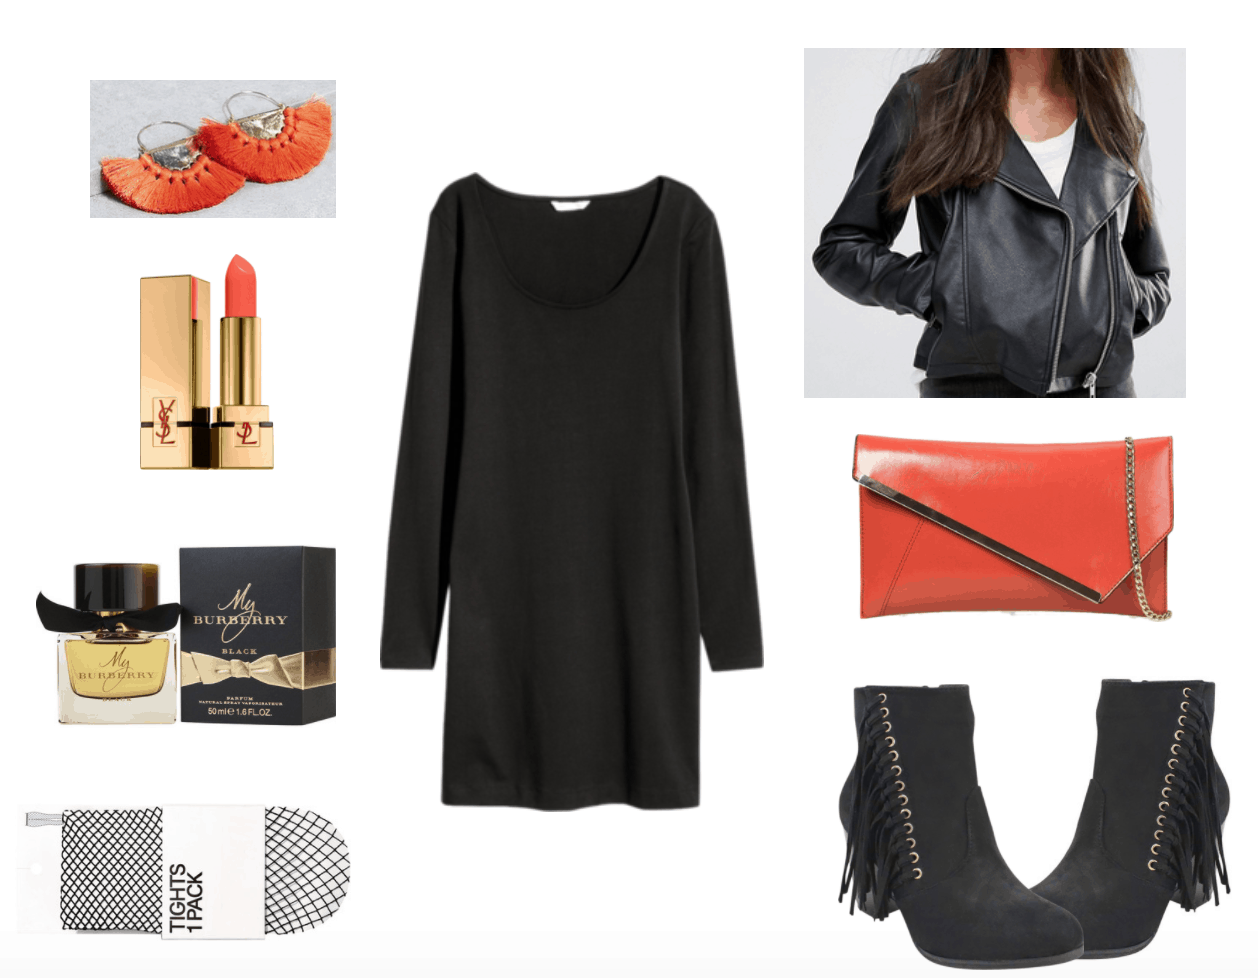 Little black dress outfit: LBD with orange clutch, earrings and lipstick.